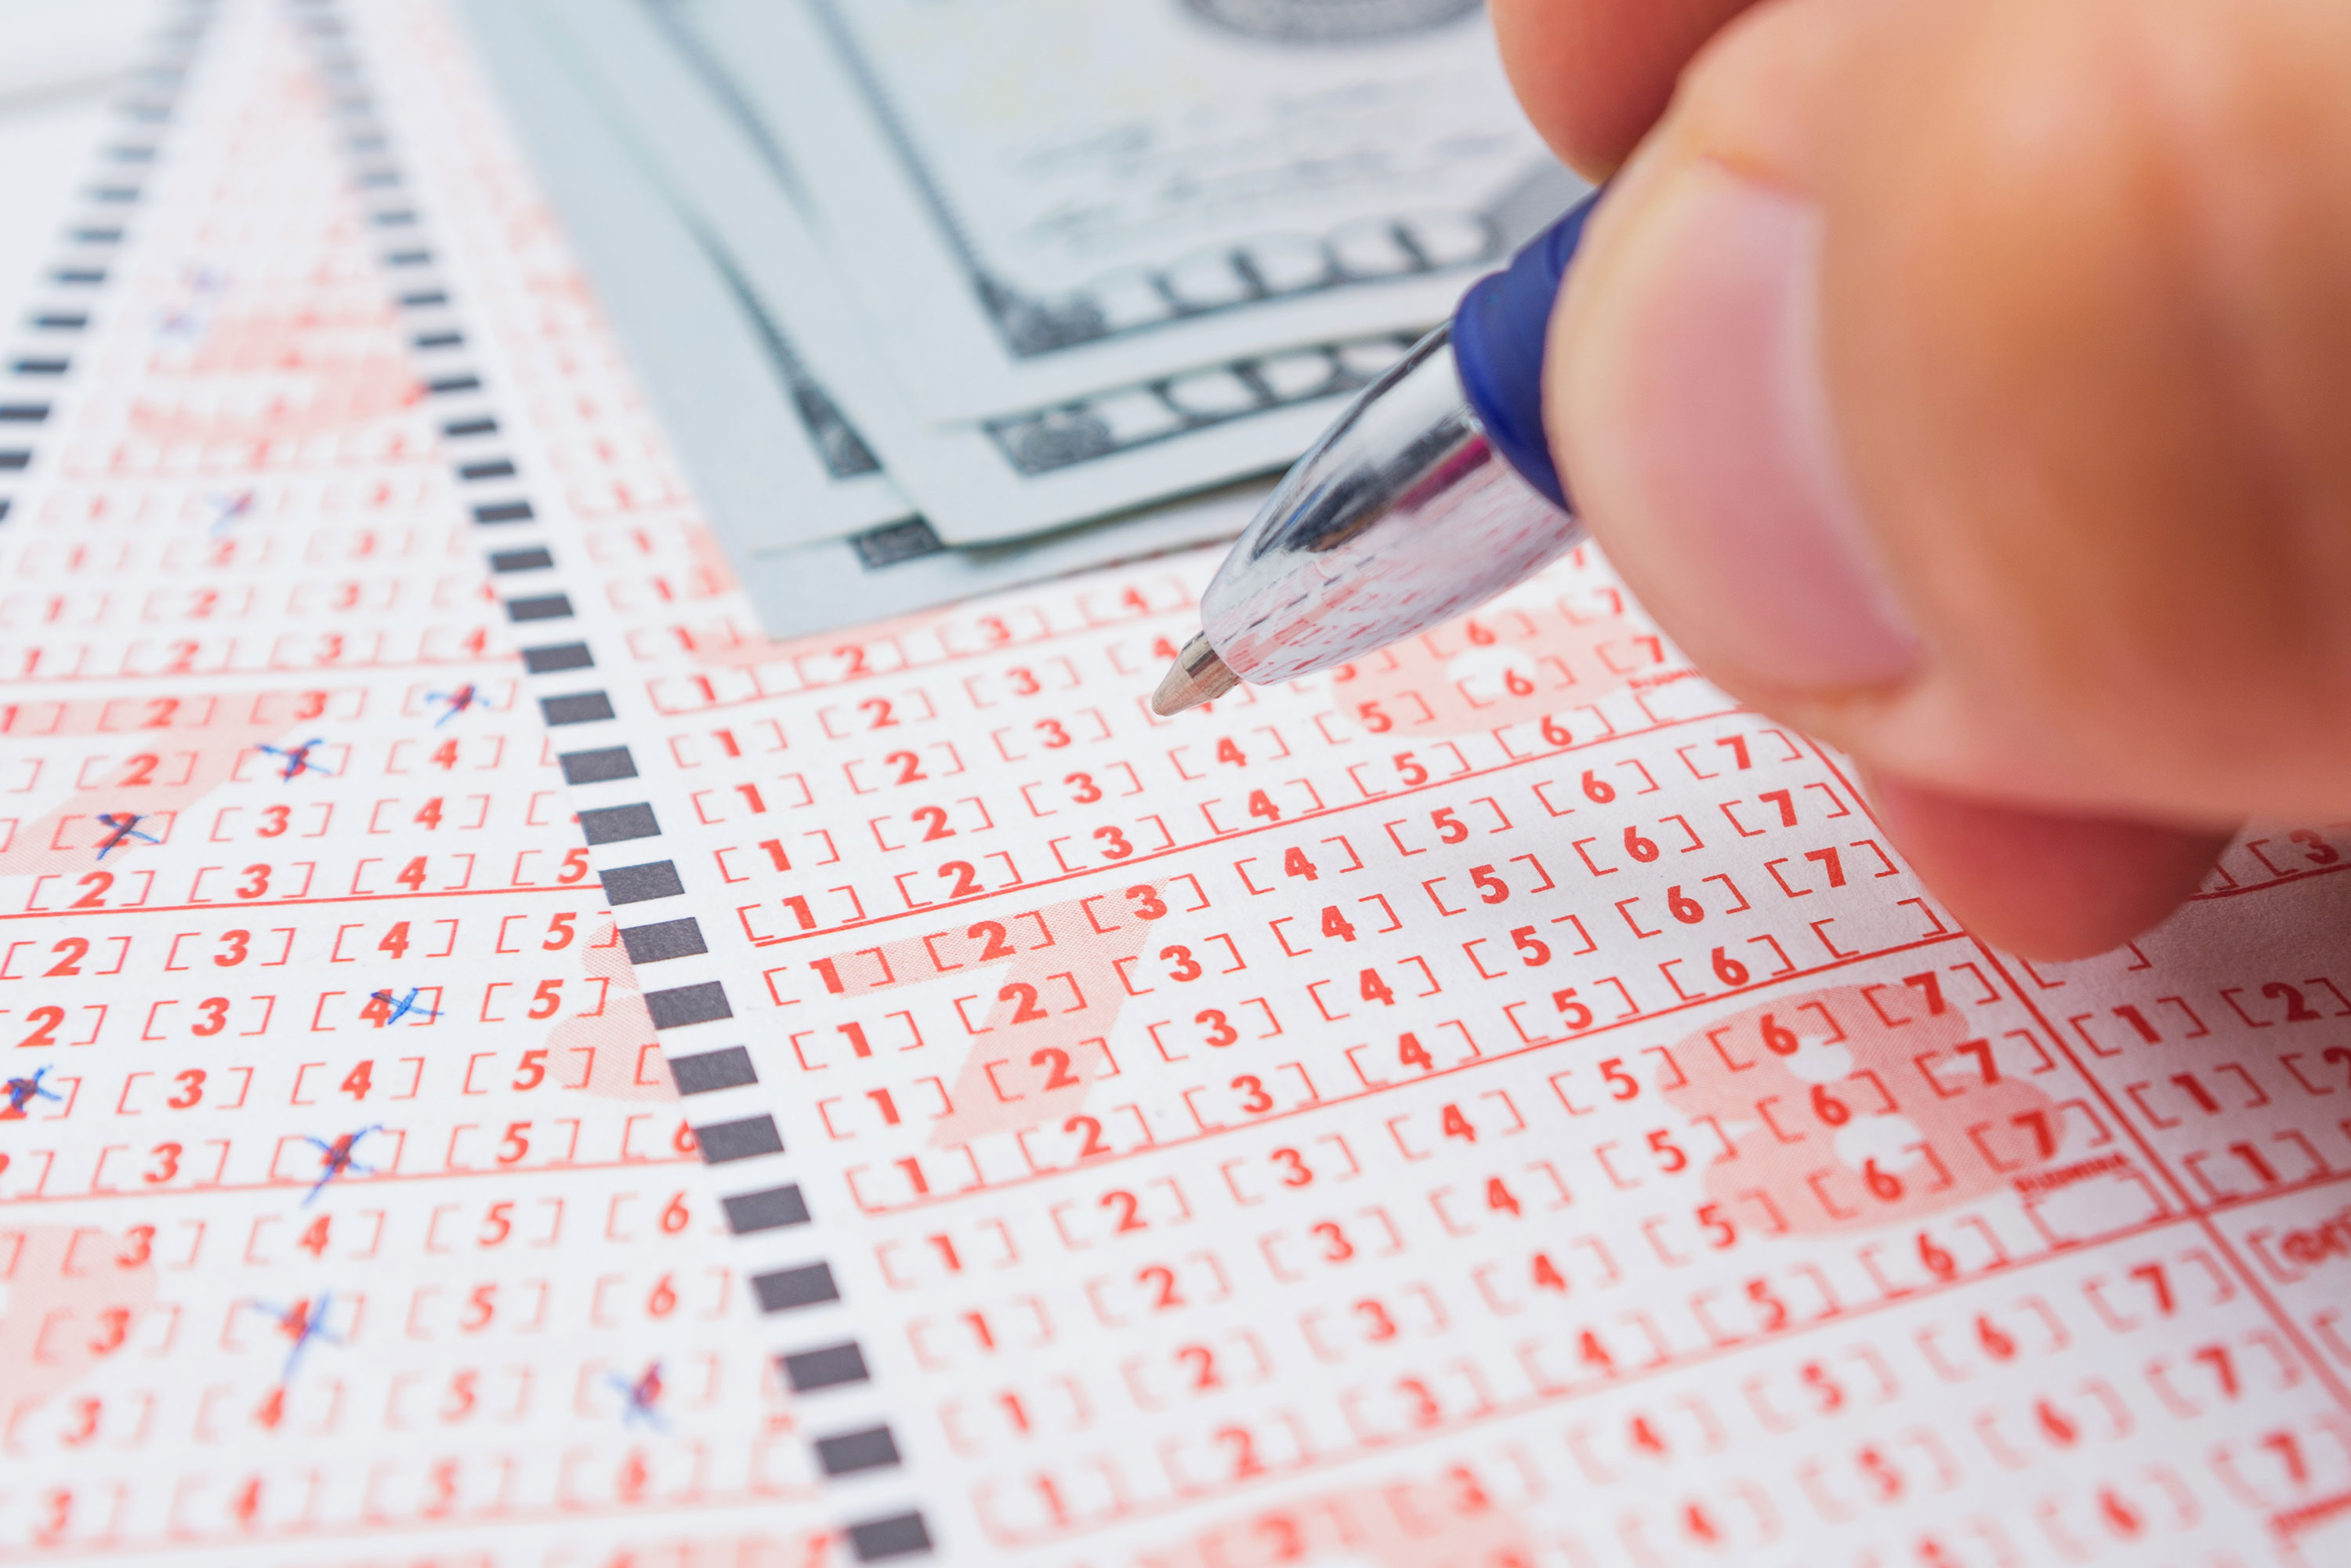 Over 2,000 people win single lottery after picking 0-0-0-0